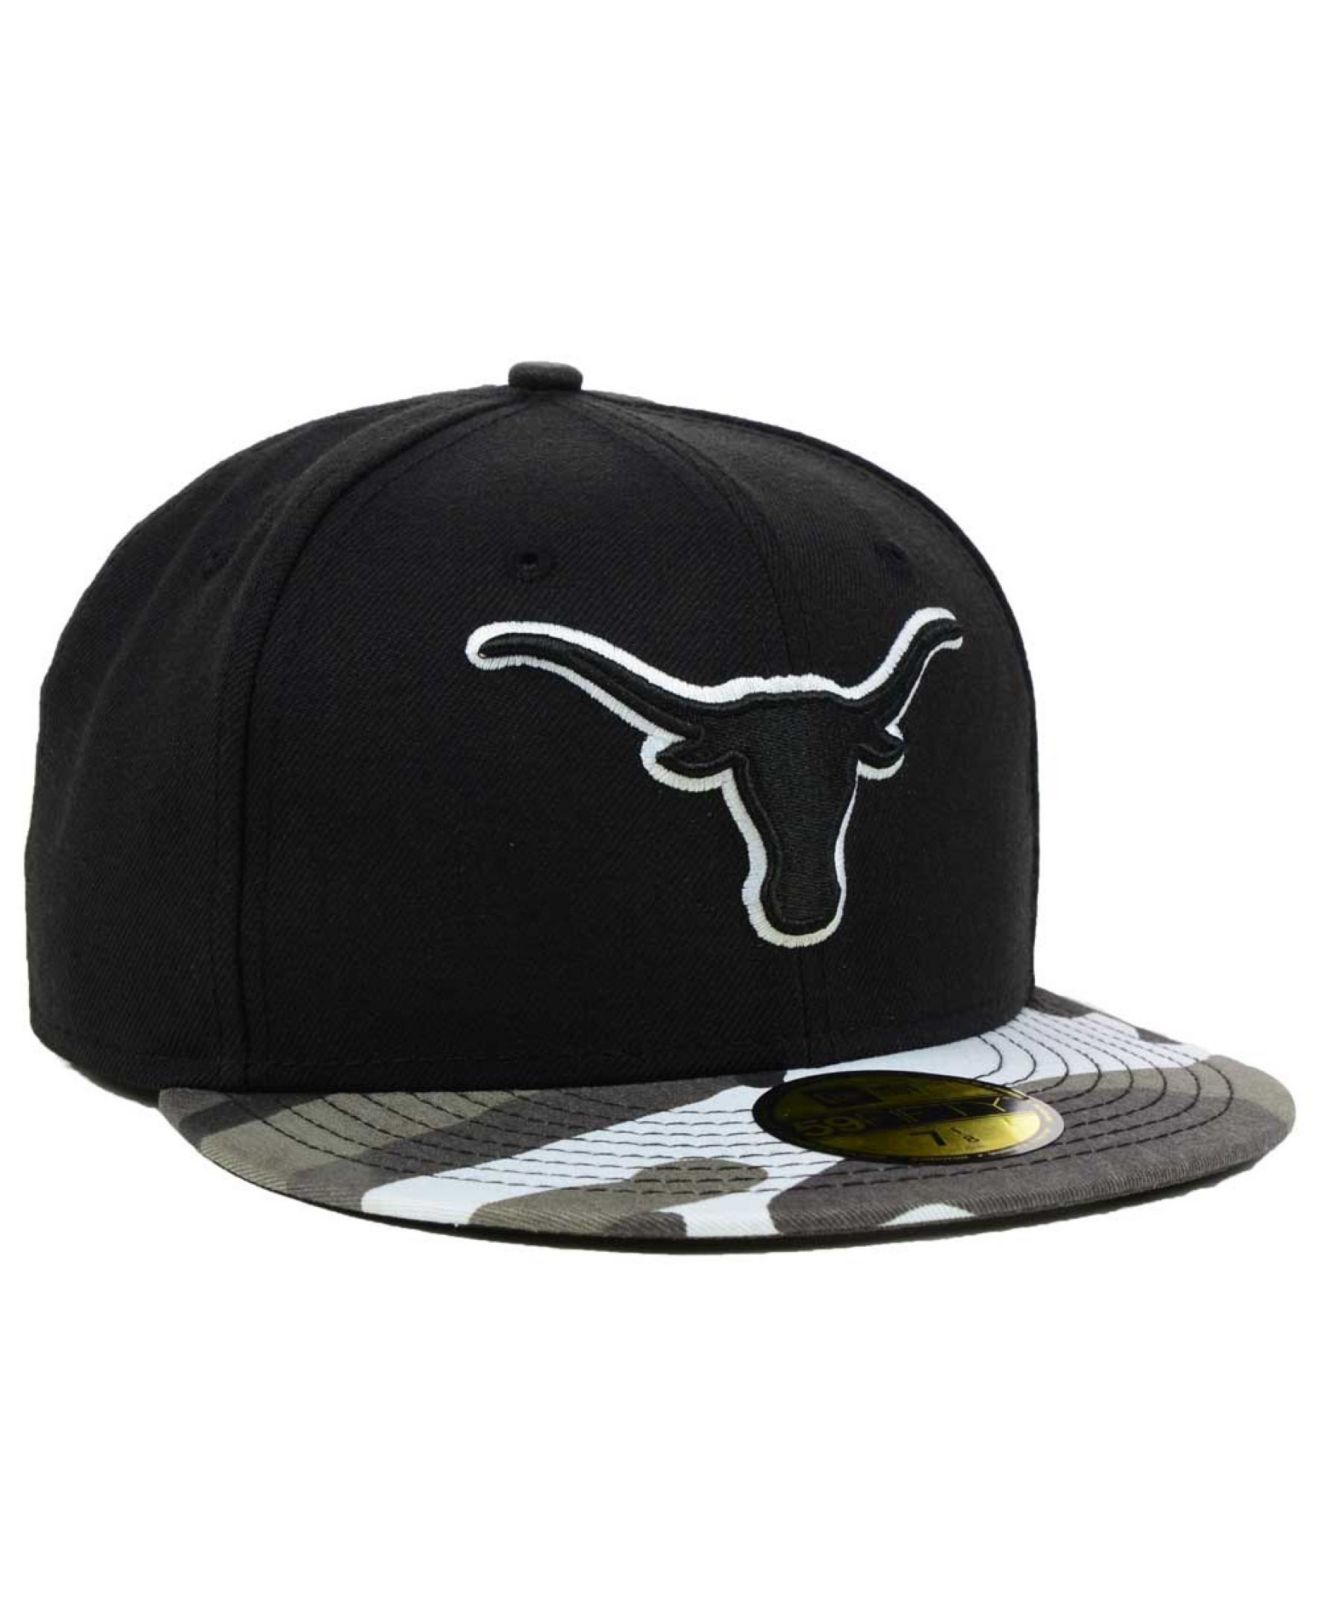 outlet store 6b7f9 7a896 france lyst ktz texas longhorns urban camo 59fifty cap in white for men  dc6f9 4e038